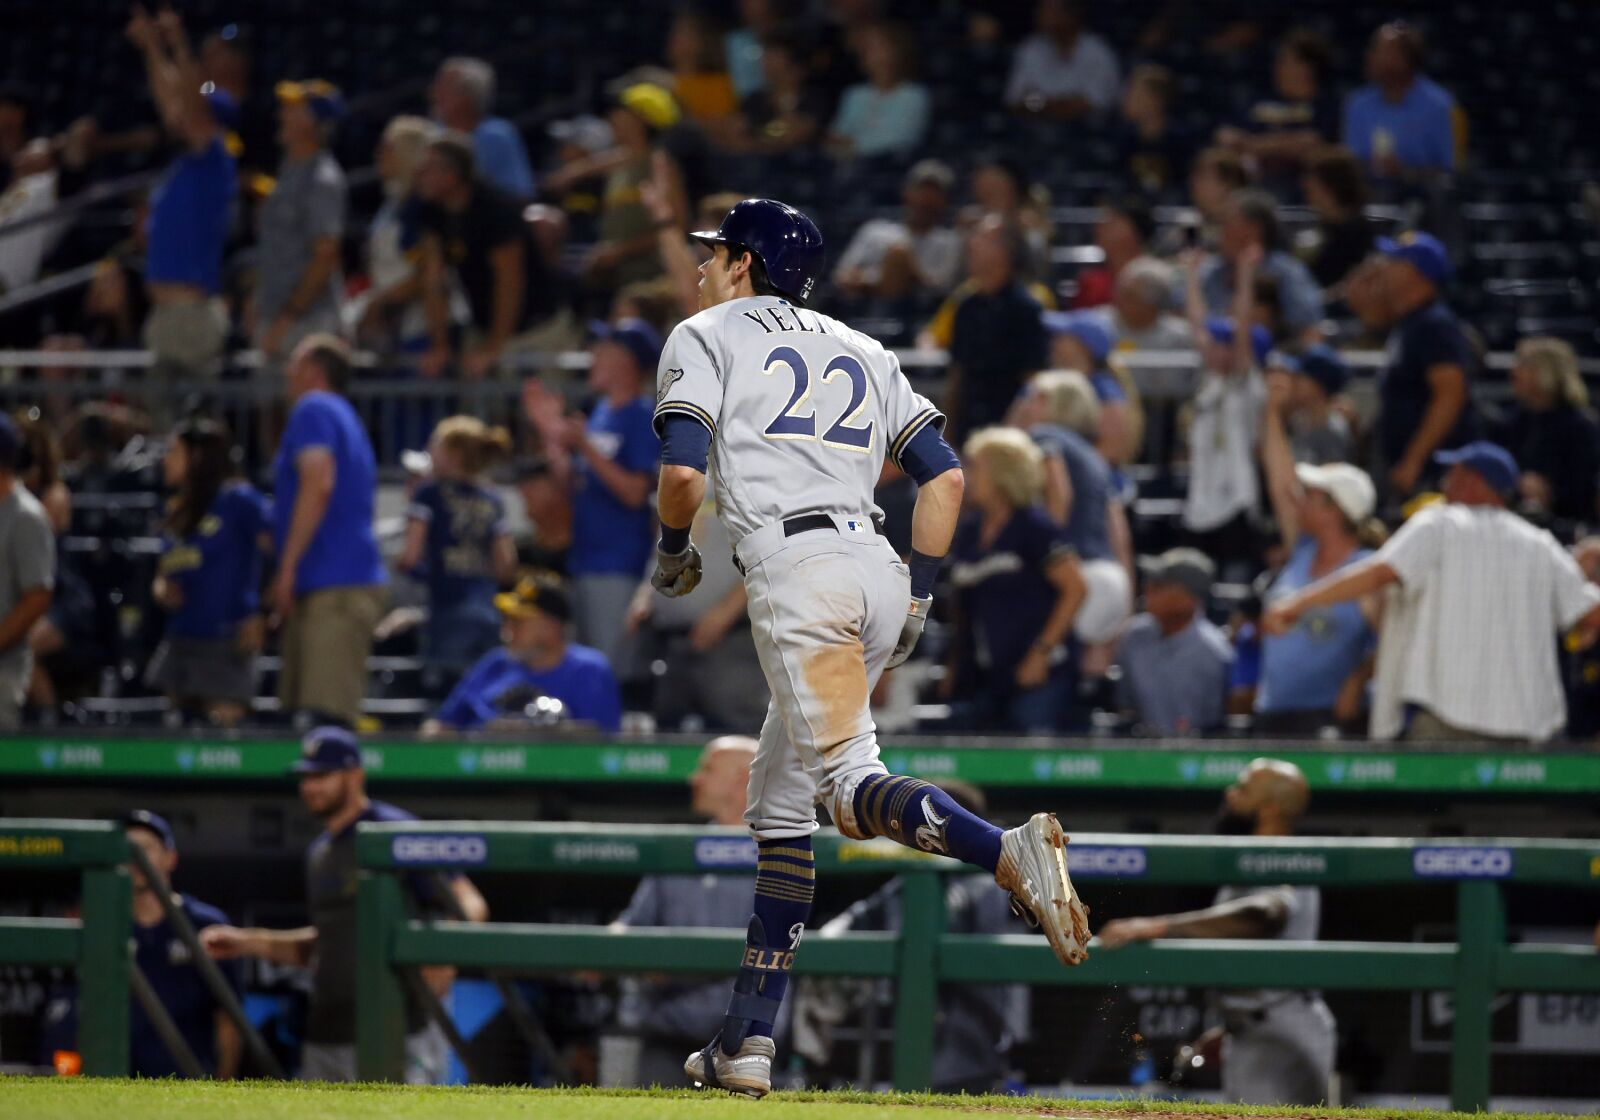 Milwaukee Brewers: Small Series Has Big Consequences